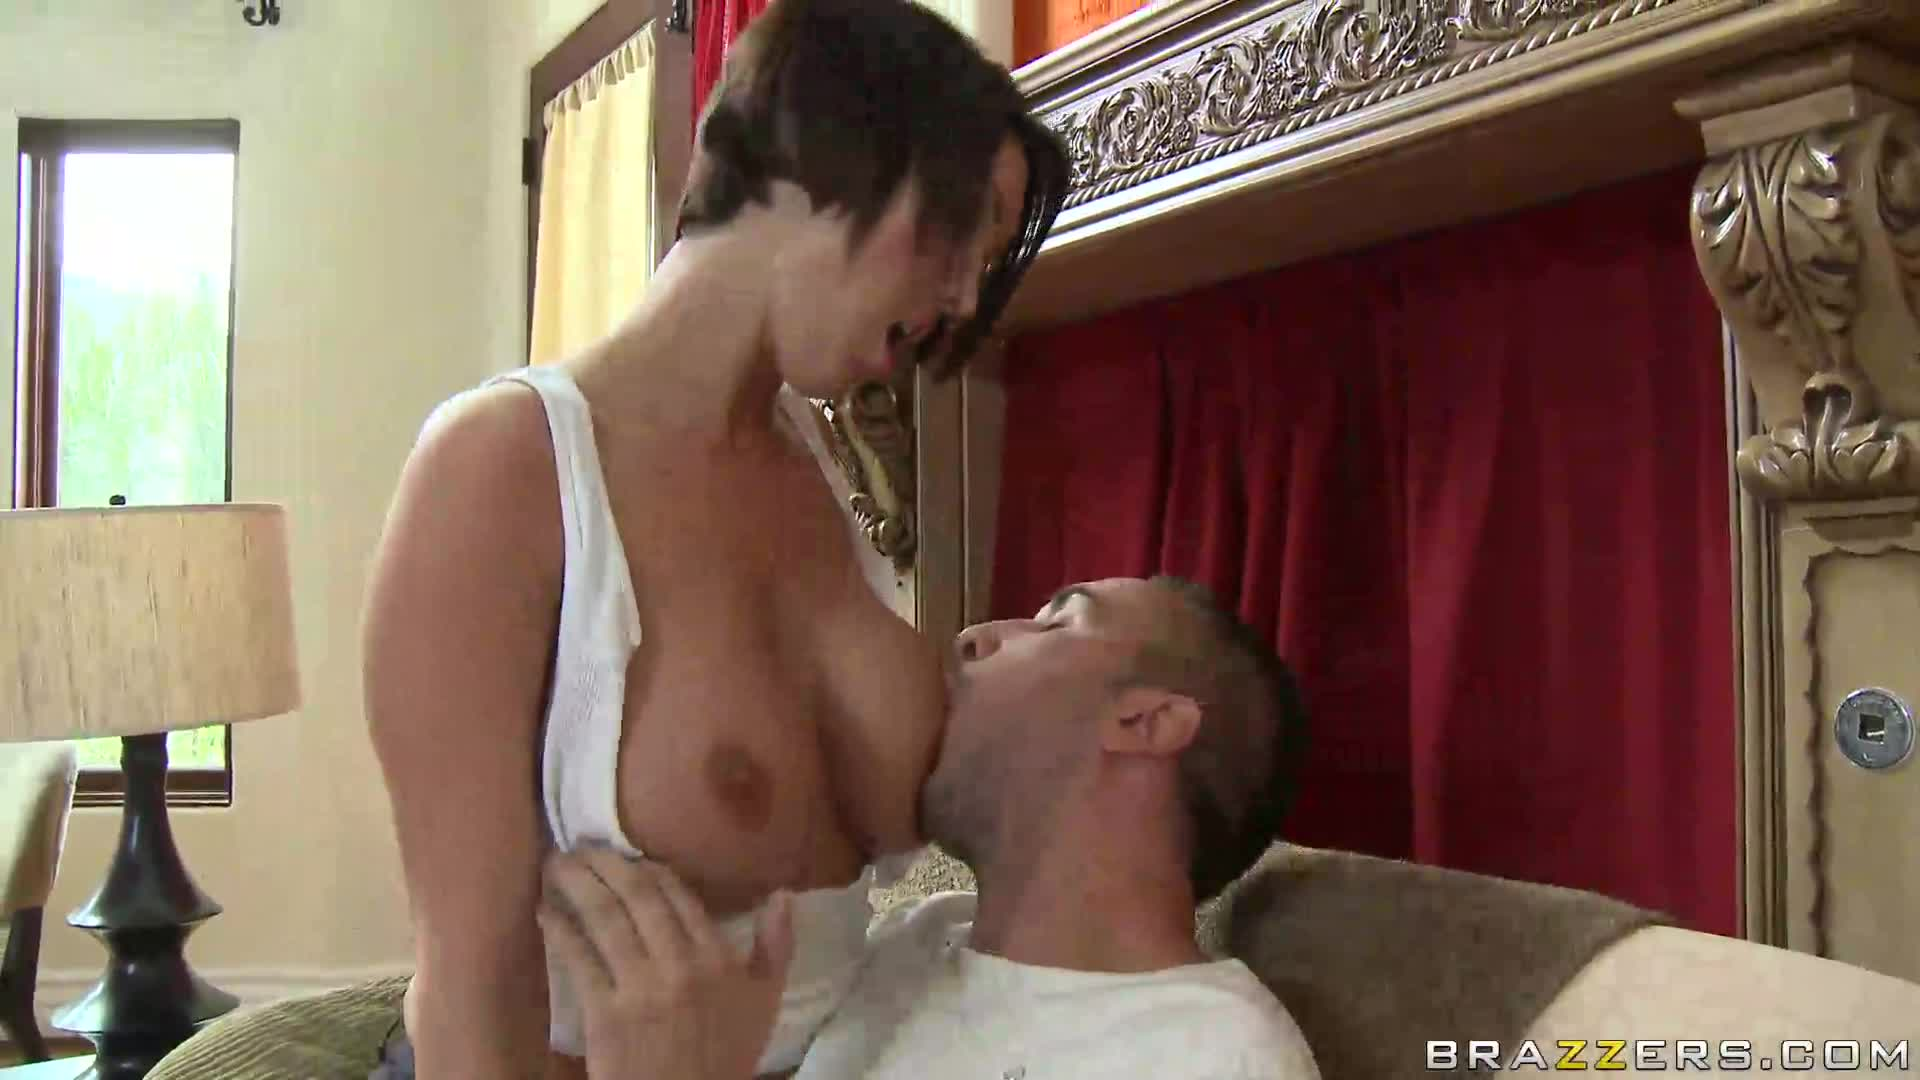 Riding Dick While Sucking Tits